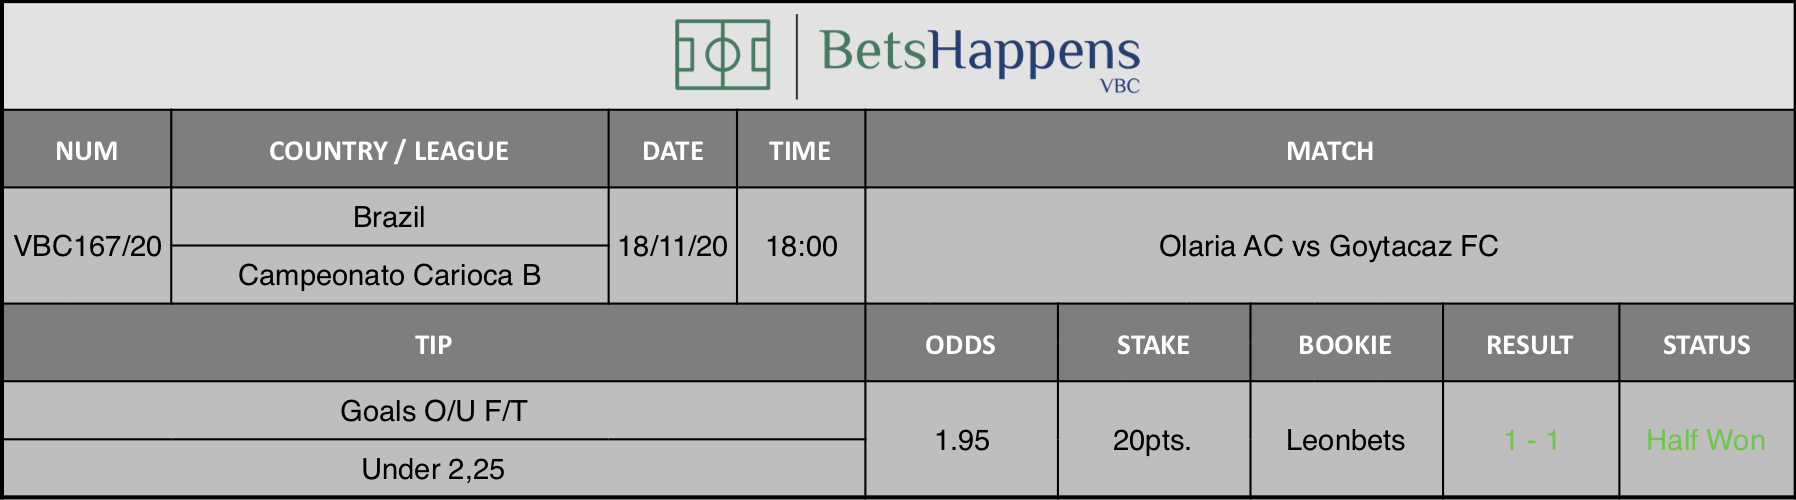 Results of our tip for the Olaria AC vs Goytacaz FC match where Goals O/U F/T Under 2,25 is recommended.